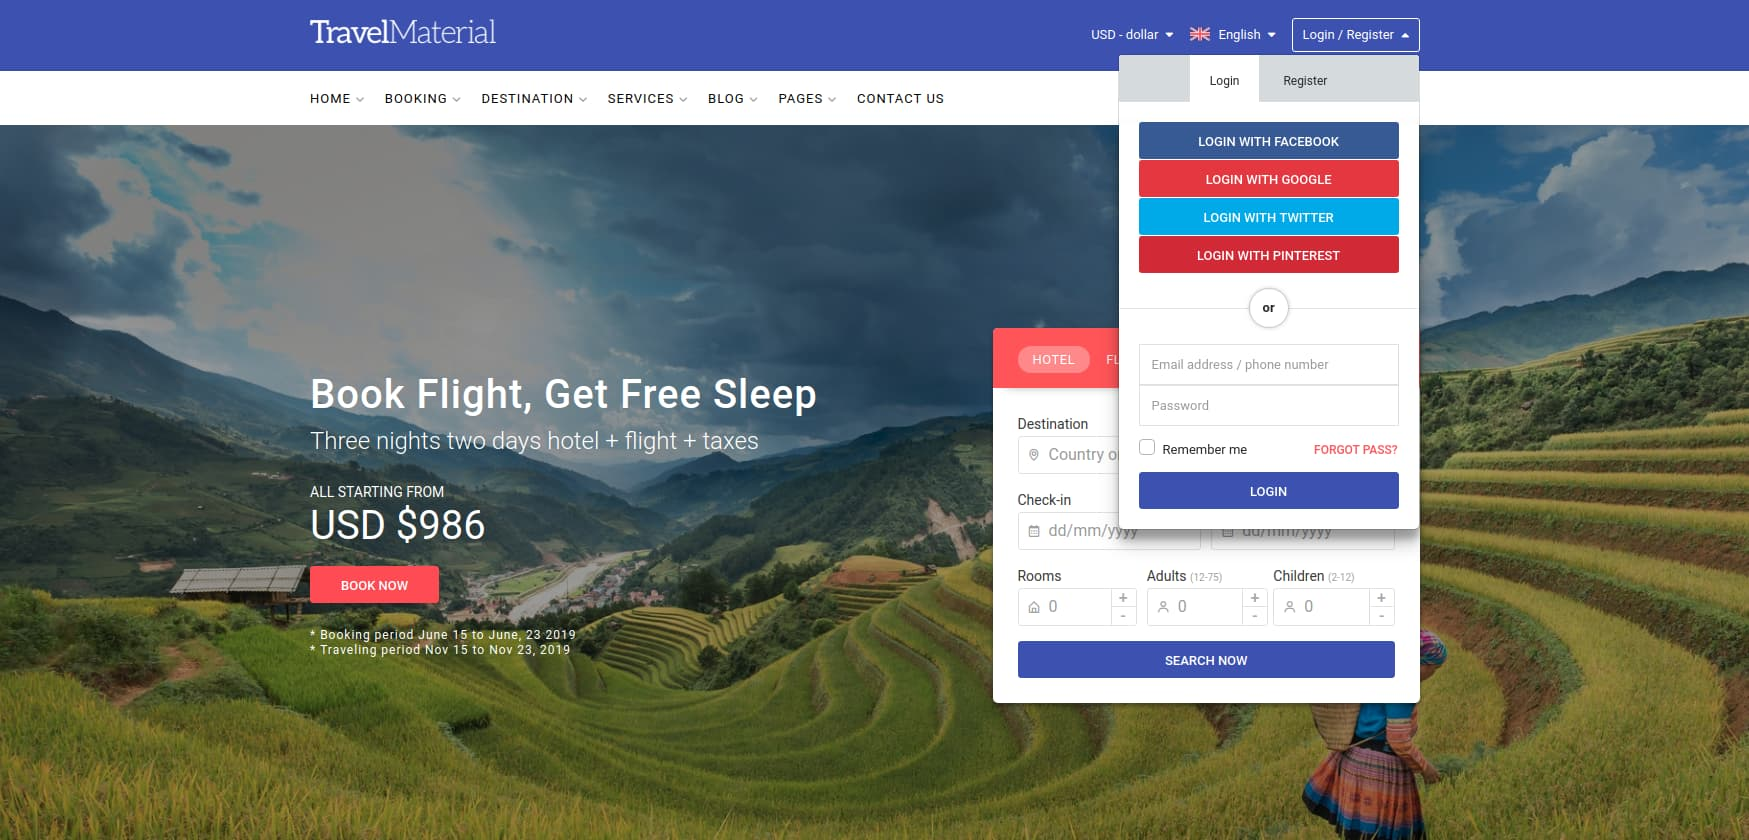 TravelMaterial's login page template